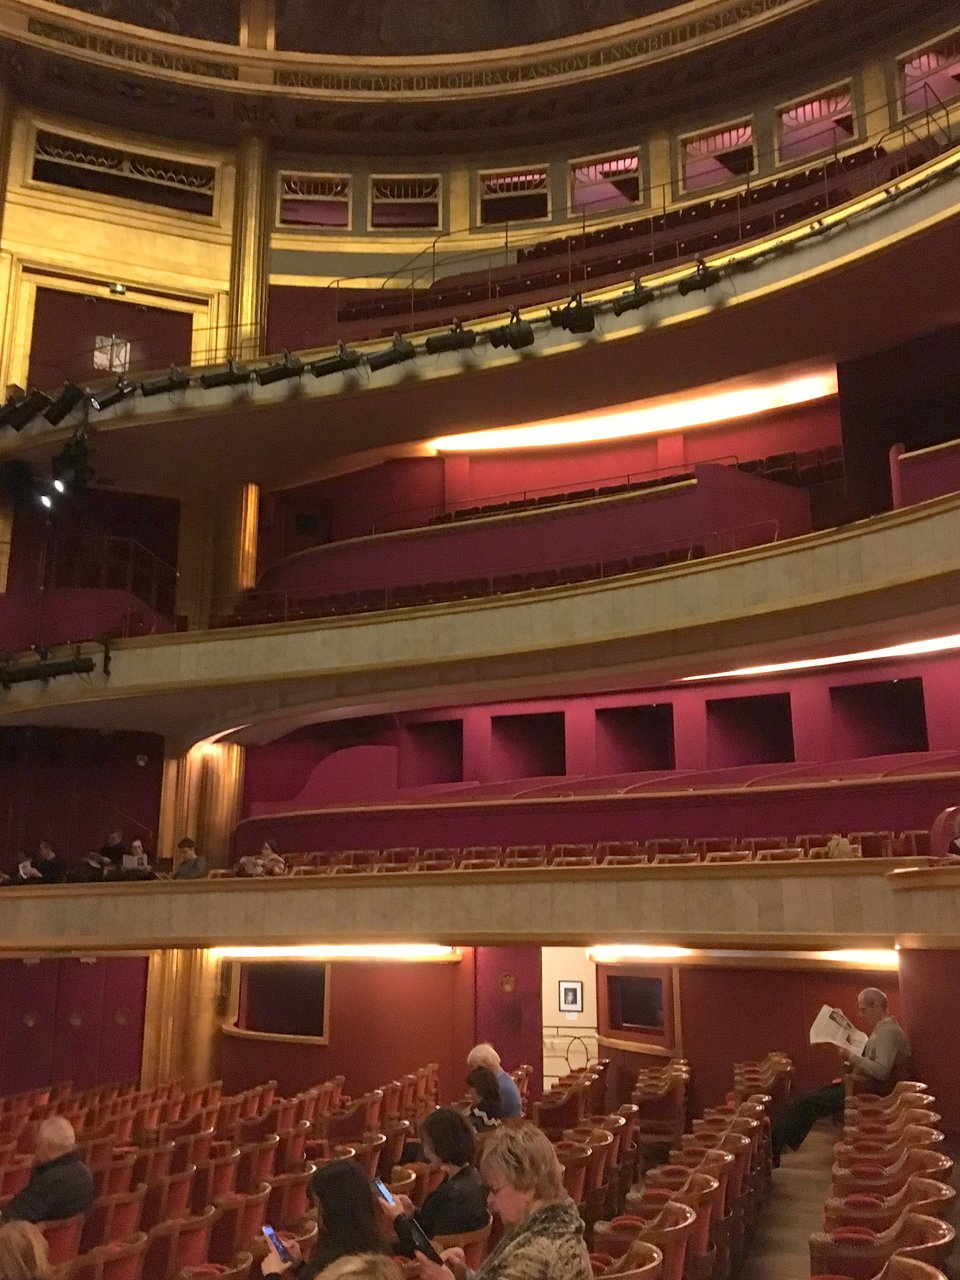 Theatre Des Champs Elysees Paris 2021 All You Need To Know Before You Go With Photos Tripadvisor